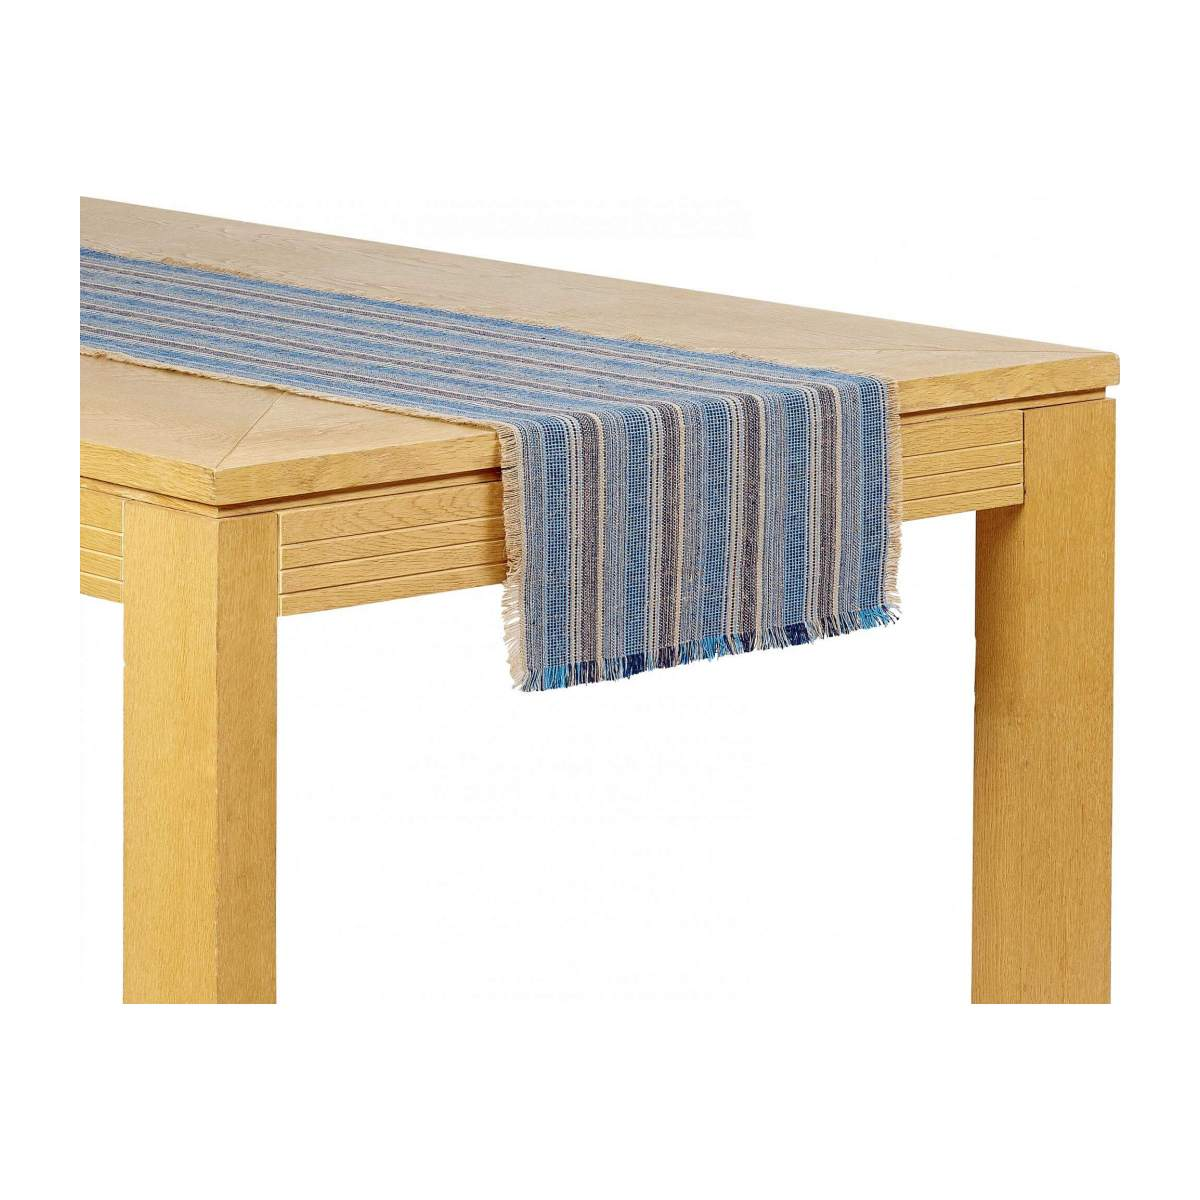 Lot de 2 travers de table - 40 x 140 cm - Bleu n°1